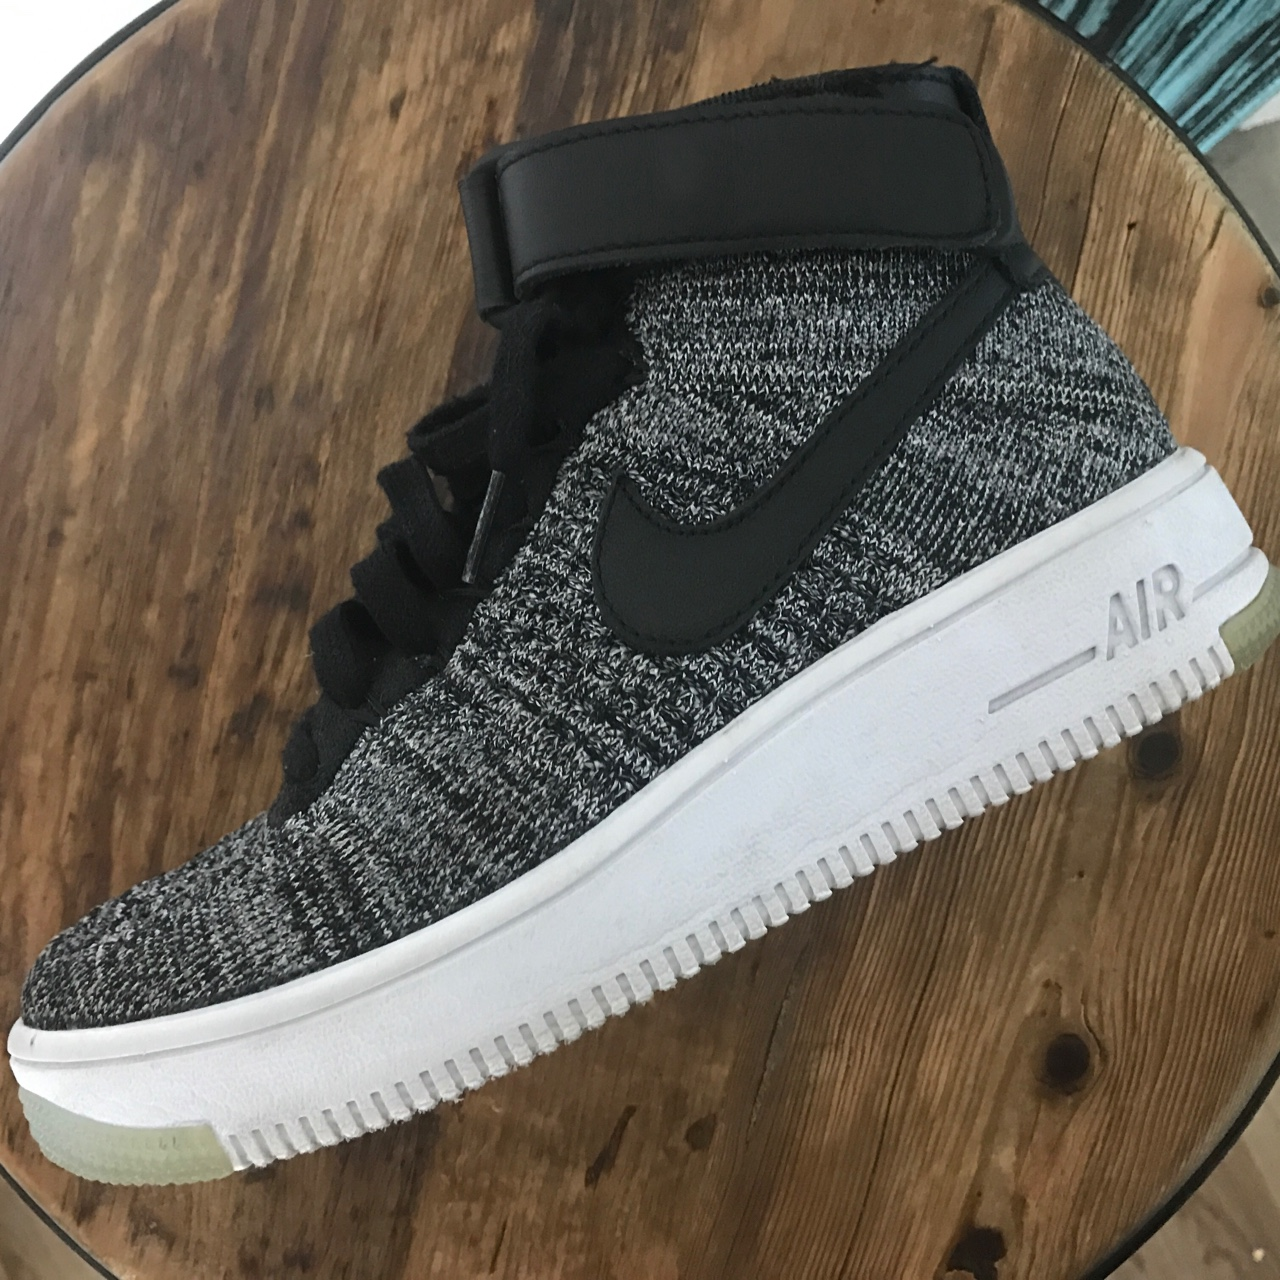 sneakers for cheap 6558f b4941 Nike Air Force 1 Ultra Flyknit high tops. Just do... - Depop